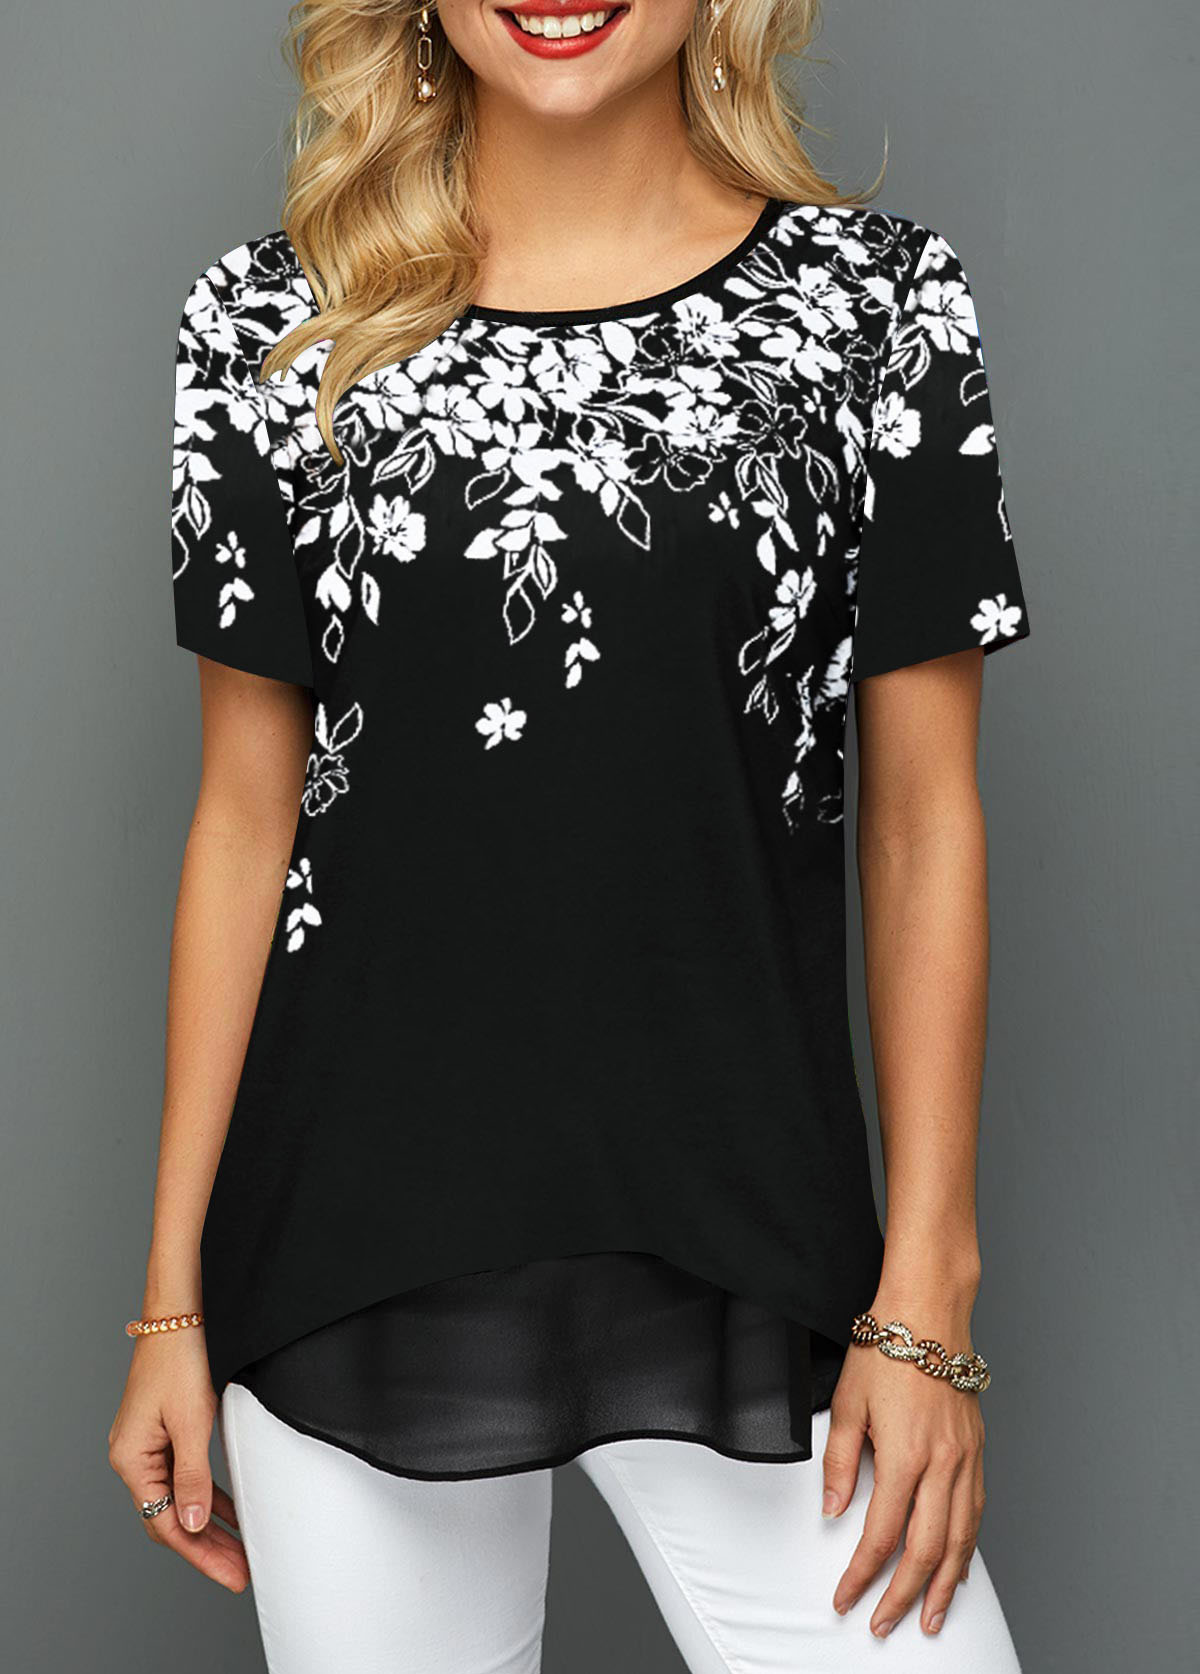 Short Sleeve Round Neck Floral Print T Shirt